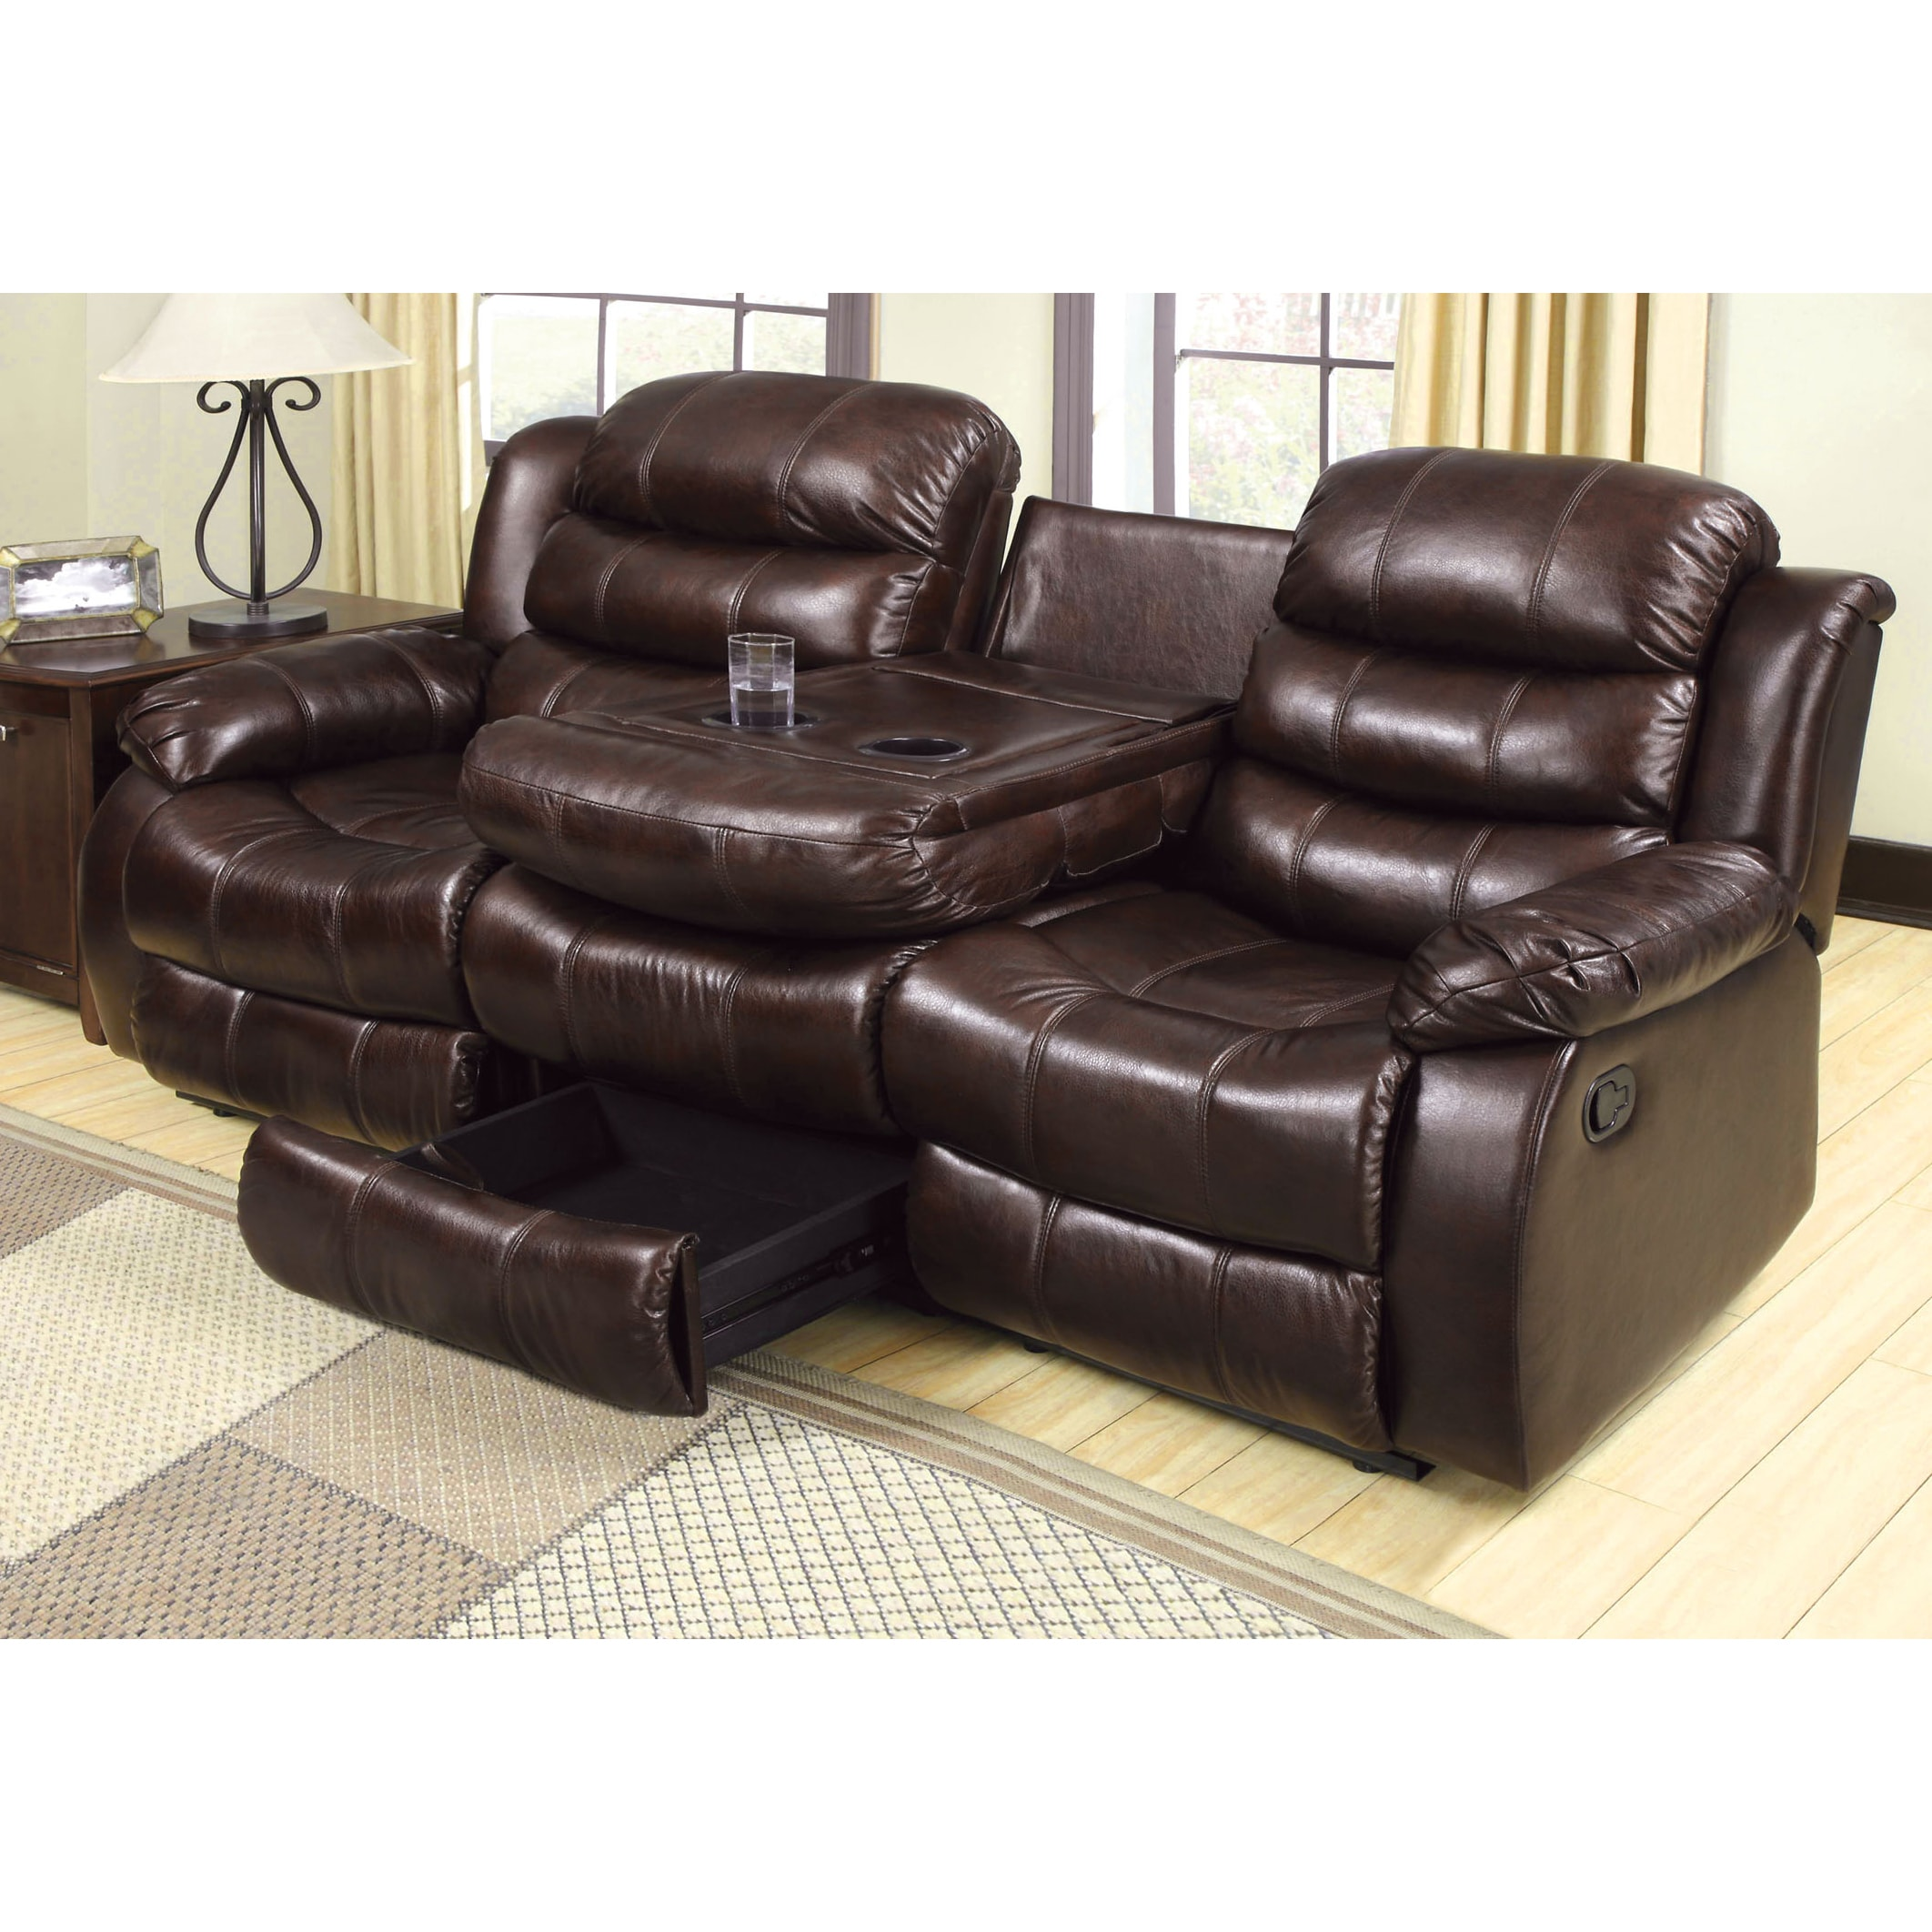 Furniture Of America Berkshield Transitional Dark Brown Leather Reclining Sofa With Dropdown Back On Free Shipping Today